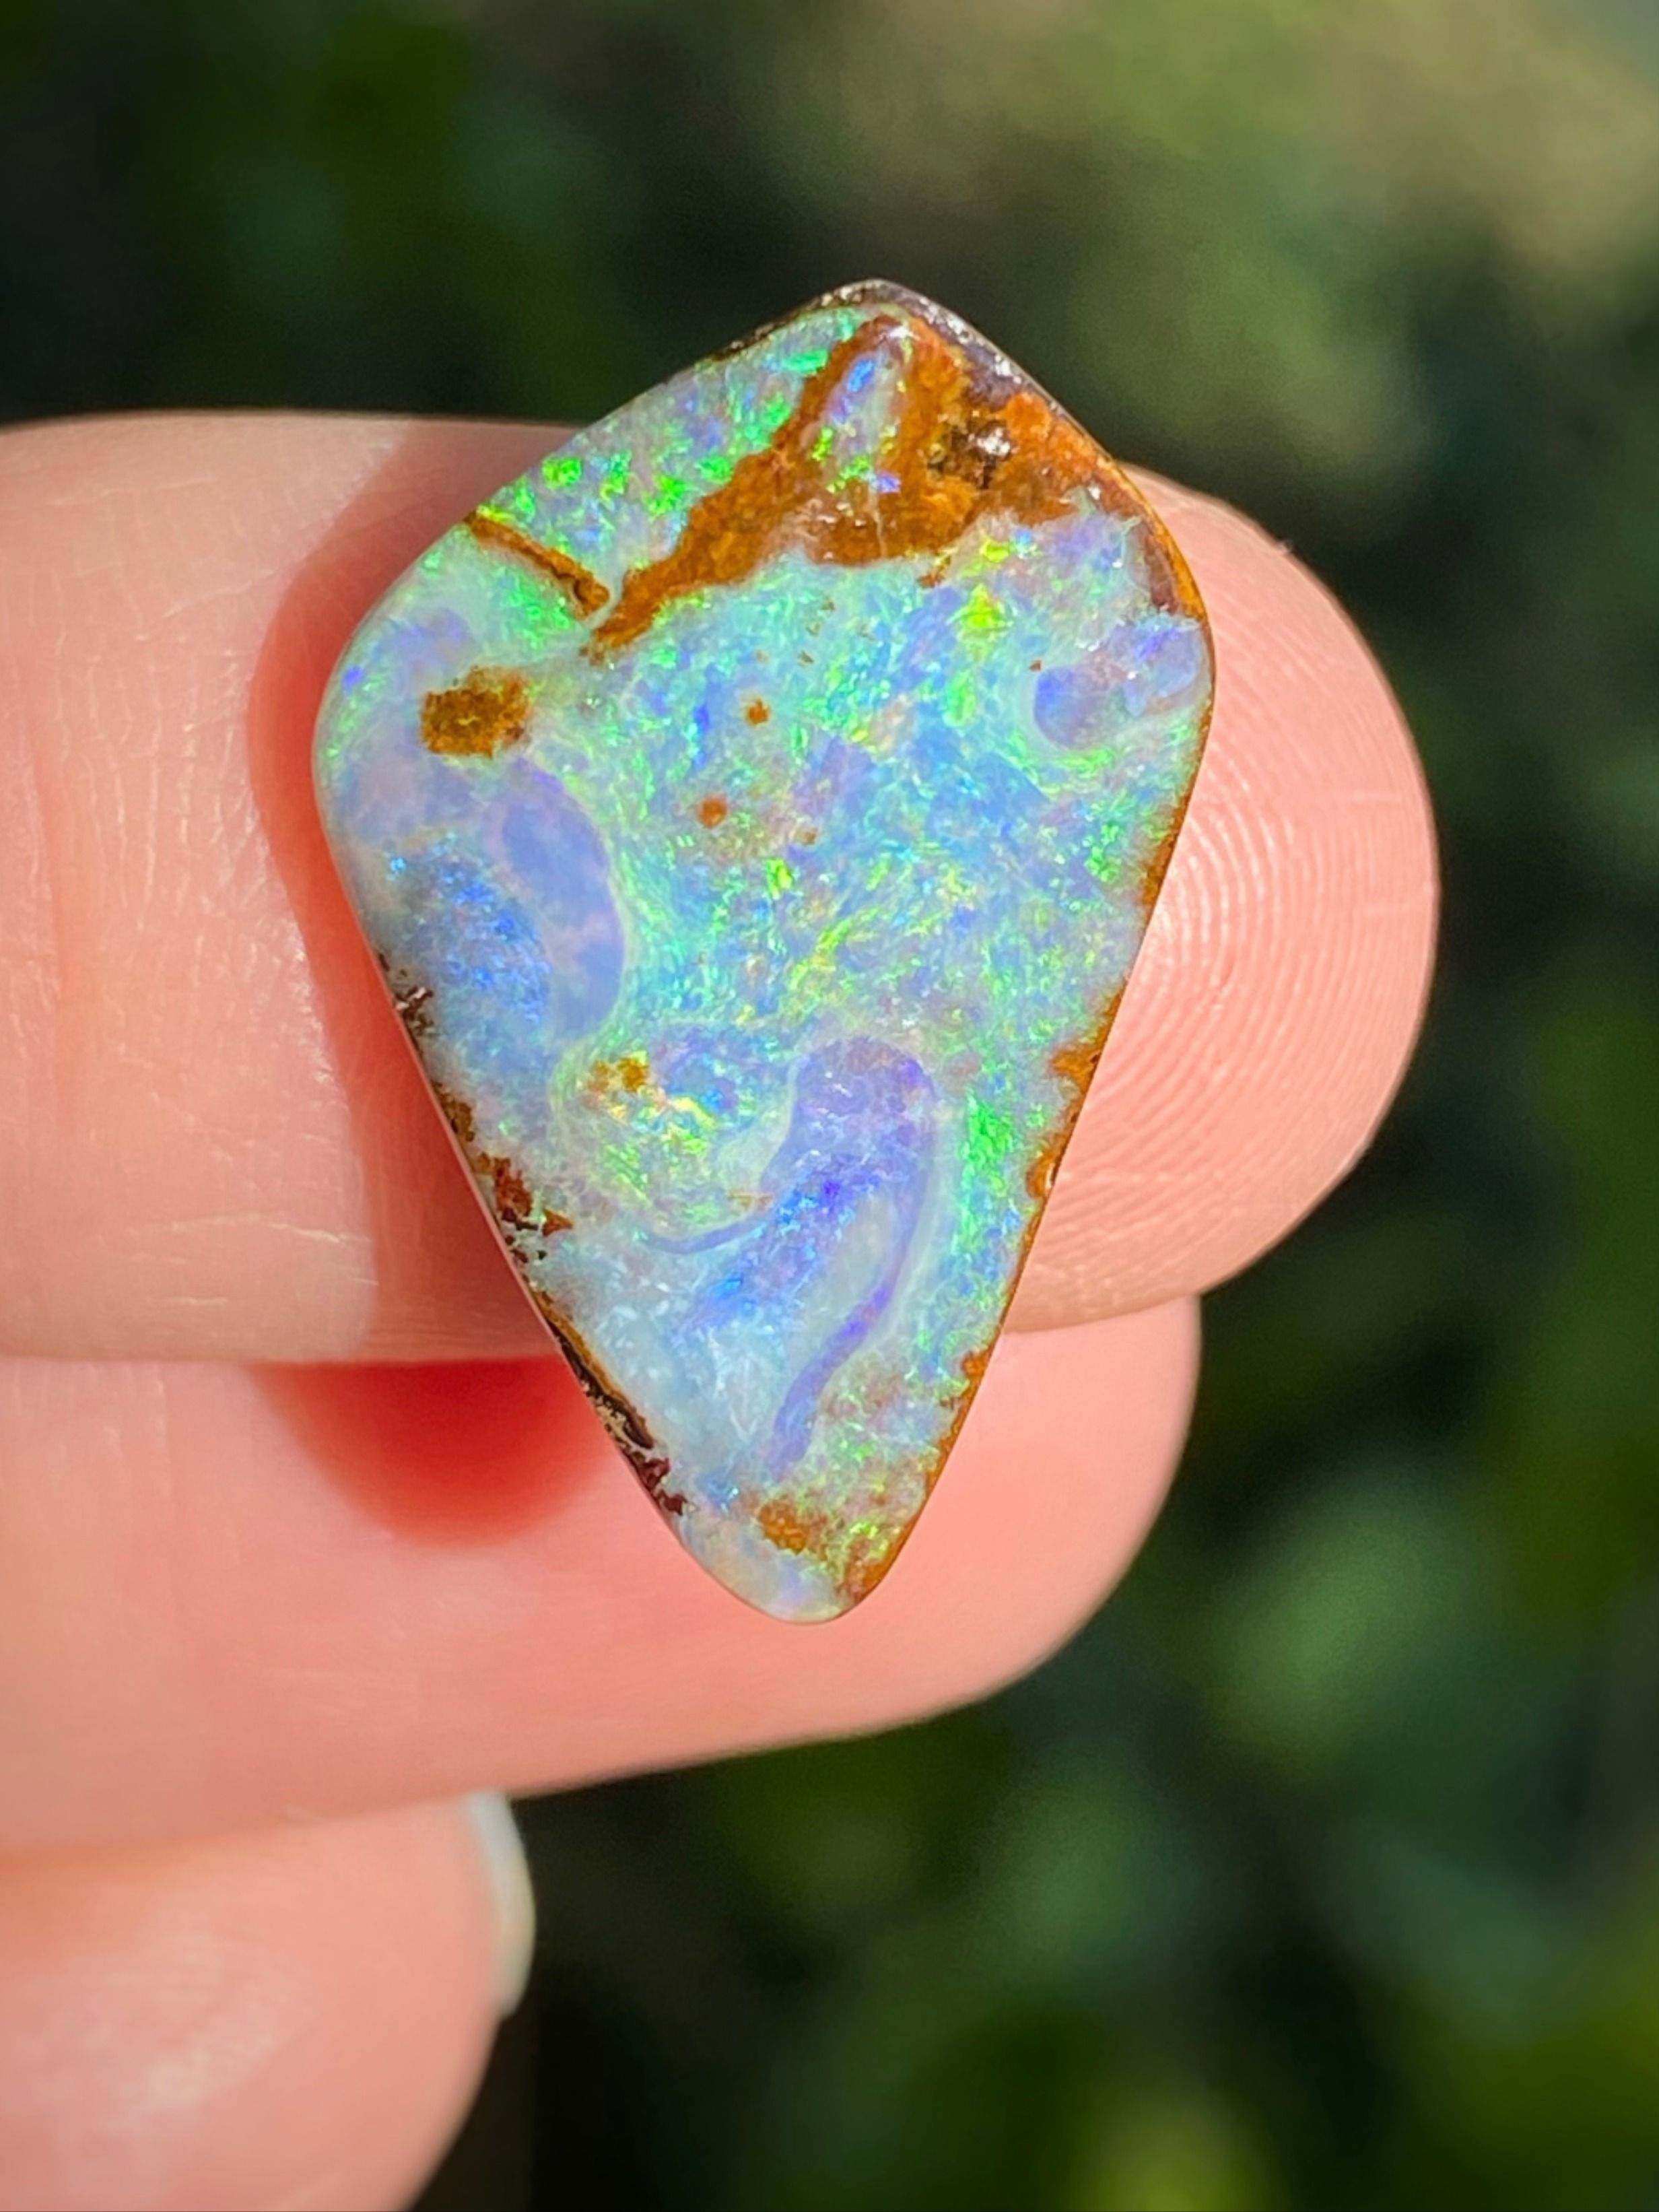 Boulder Opal Natural stone Queensland Australia jewelry, creation, collection, gift..